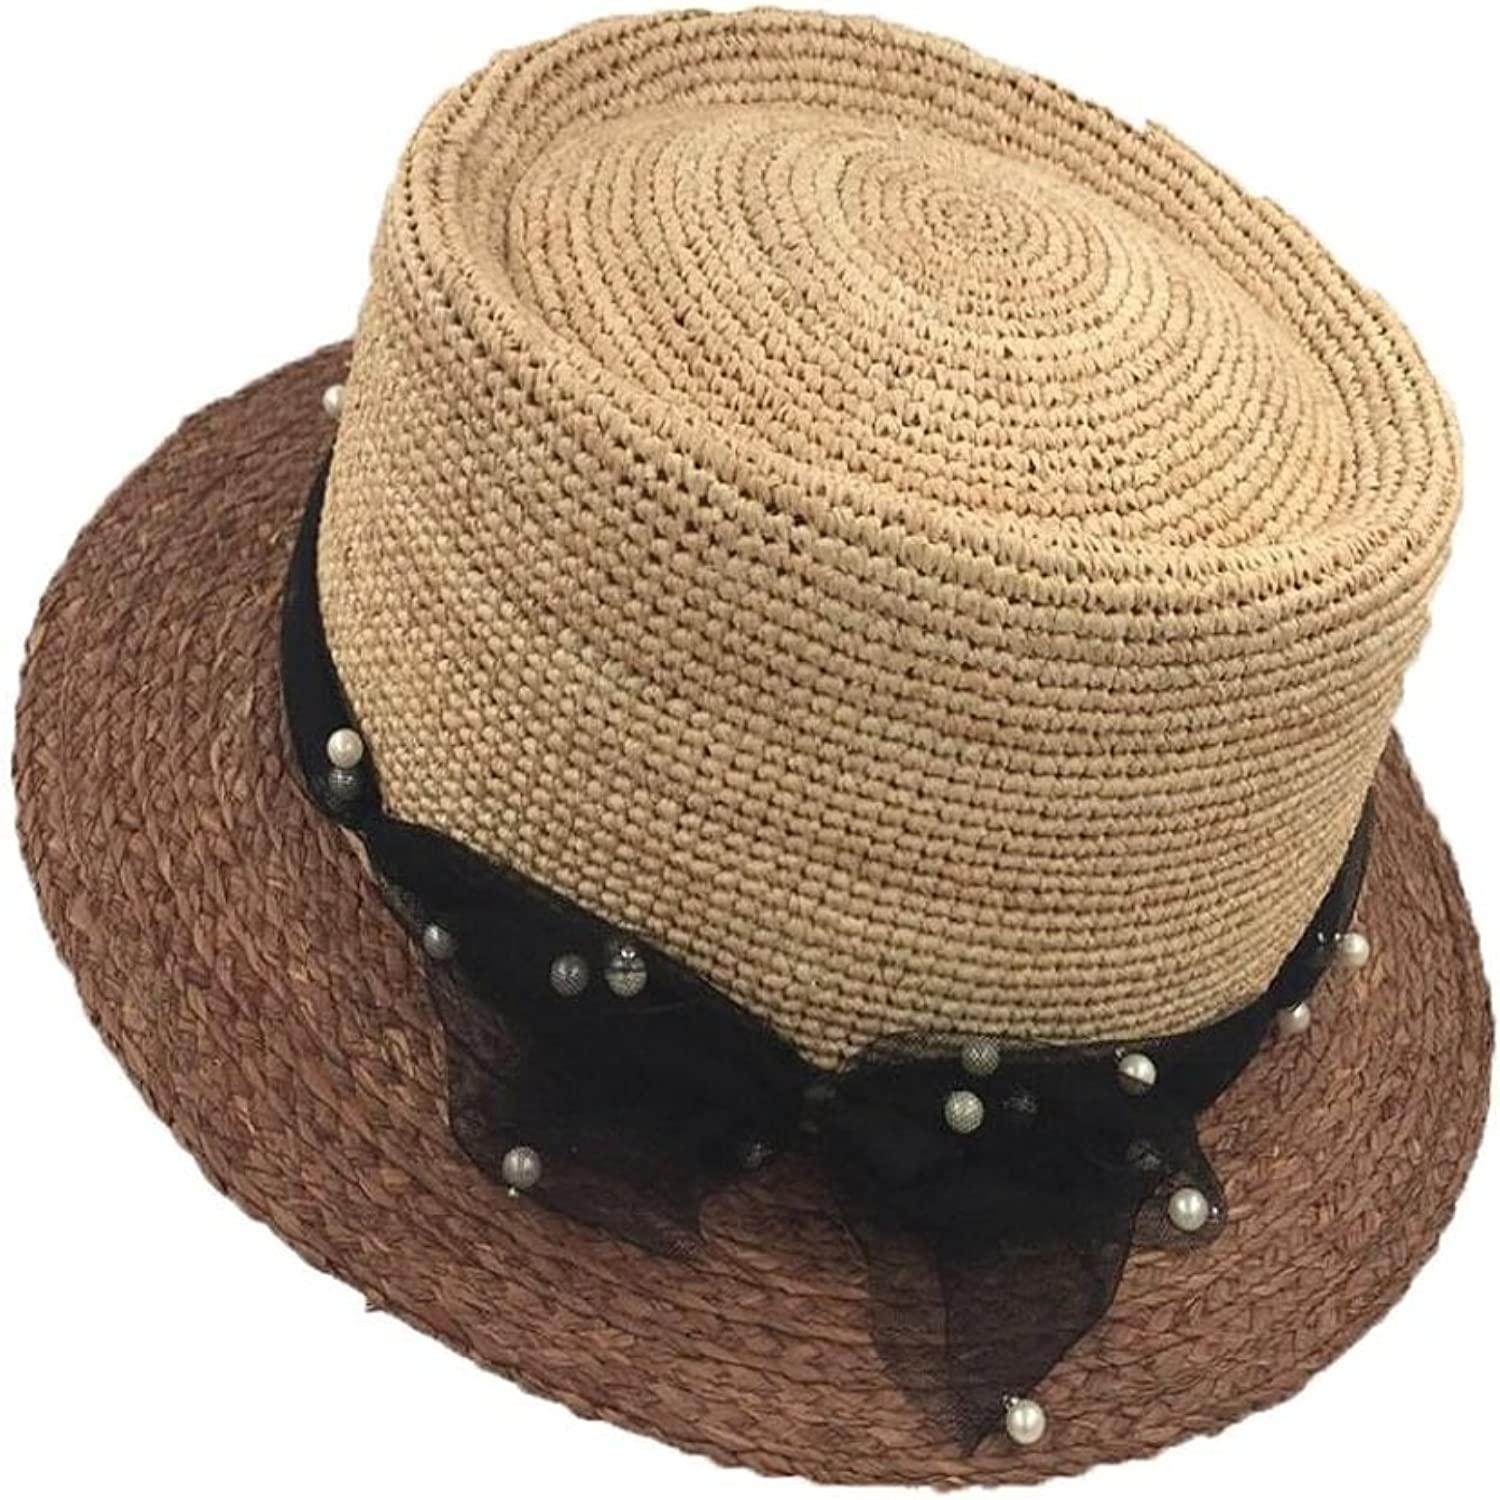 Paper Straw Straw Hat Tourism Beach Sunshade Lady Straw Hat Solid color Basin Hat